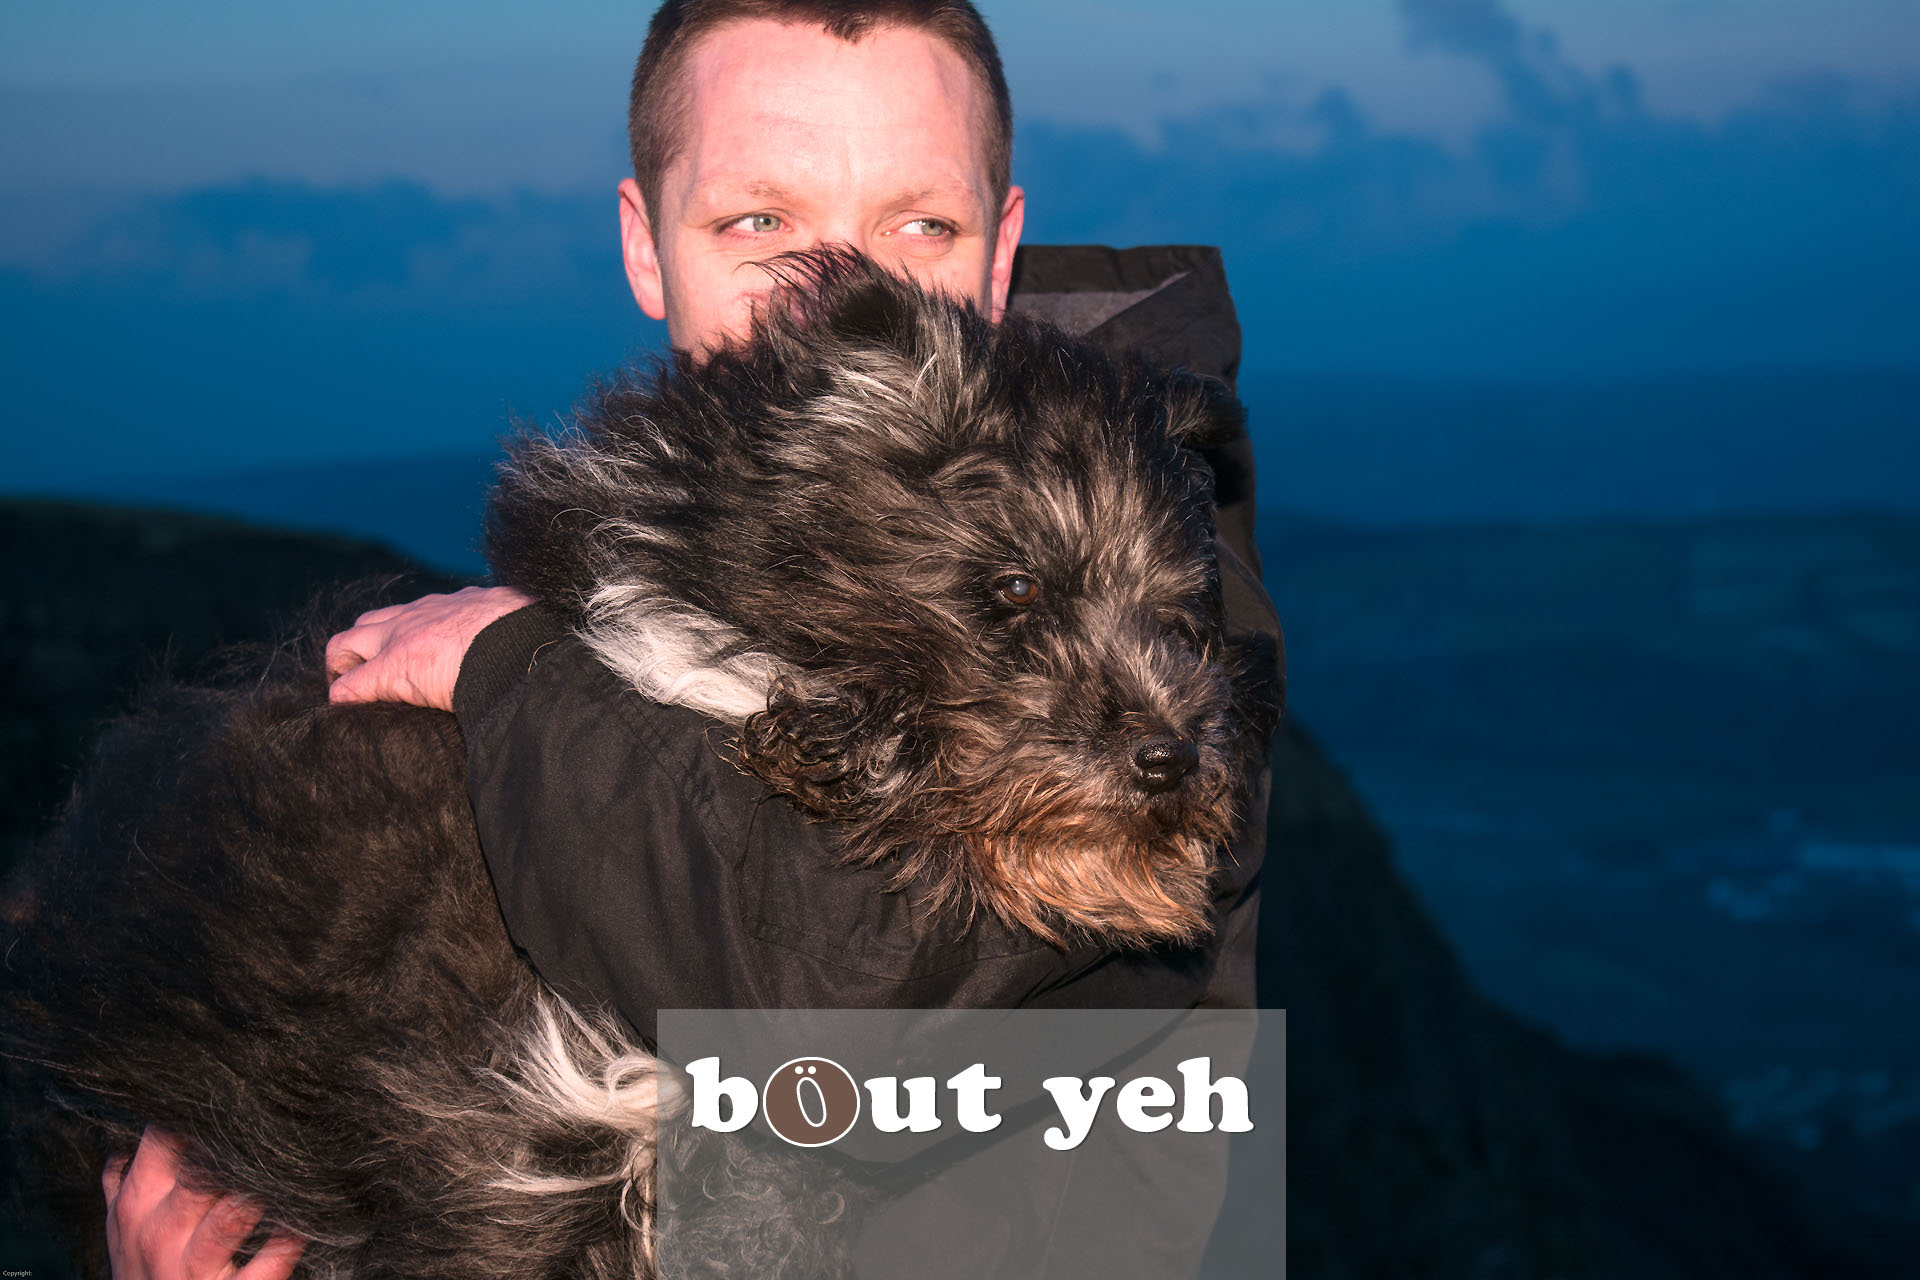 Man carries his dog for last walk on Cave Hill, Belfast, Northern Ireland - photo 4112.